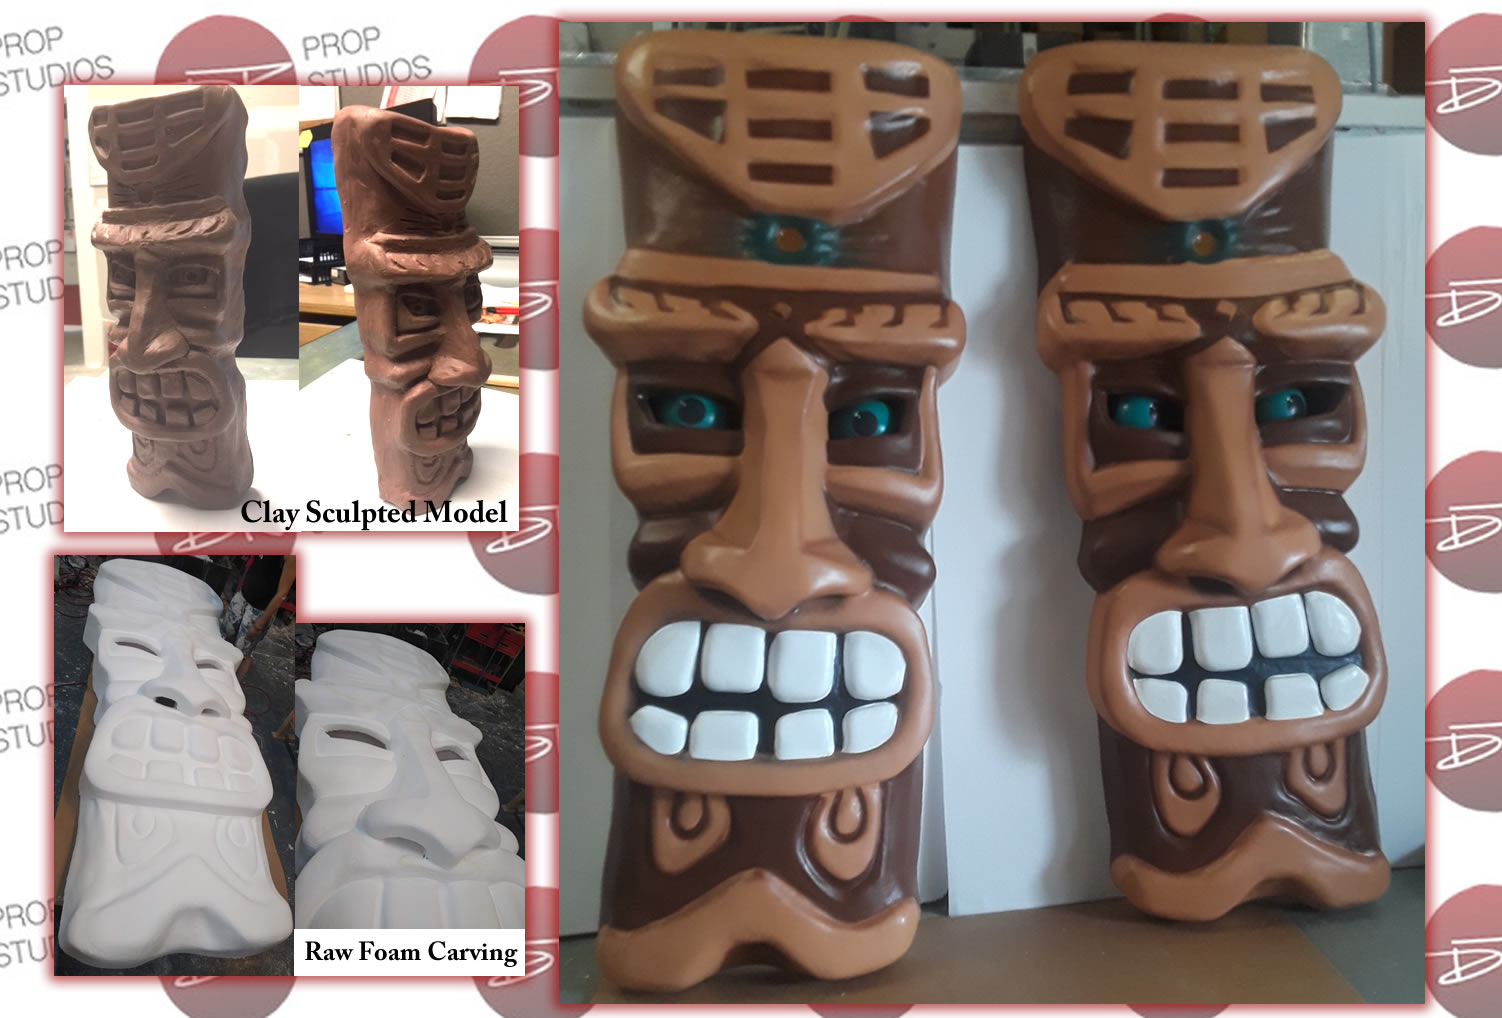 Large Oversized Tiki Foam Props for Stage Production in Cedar Point